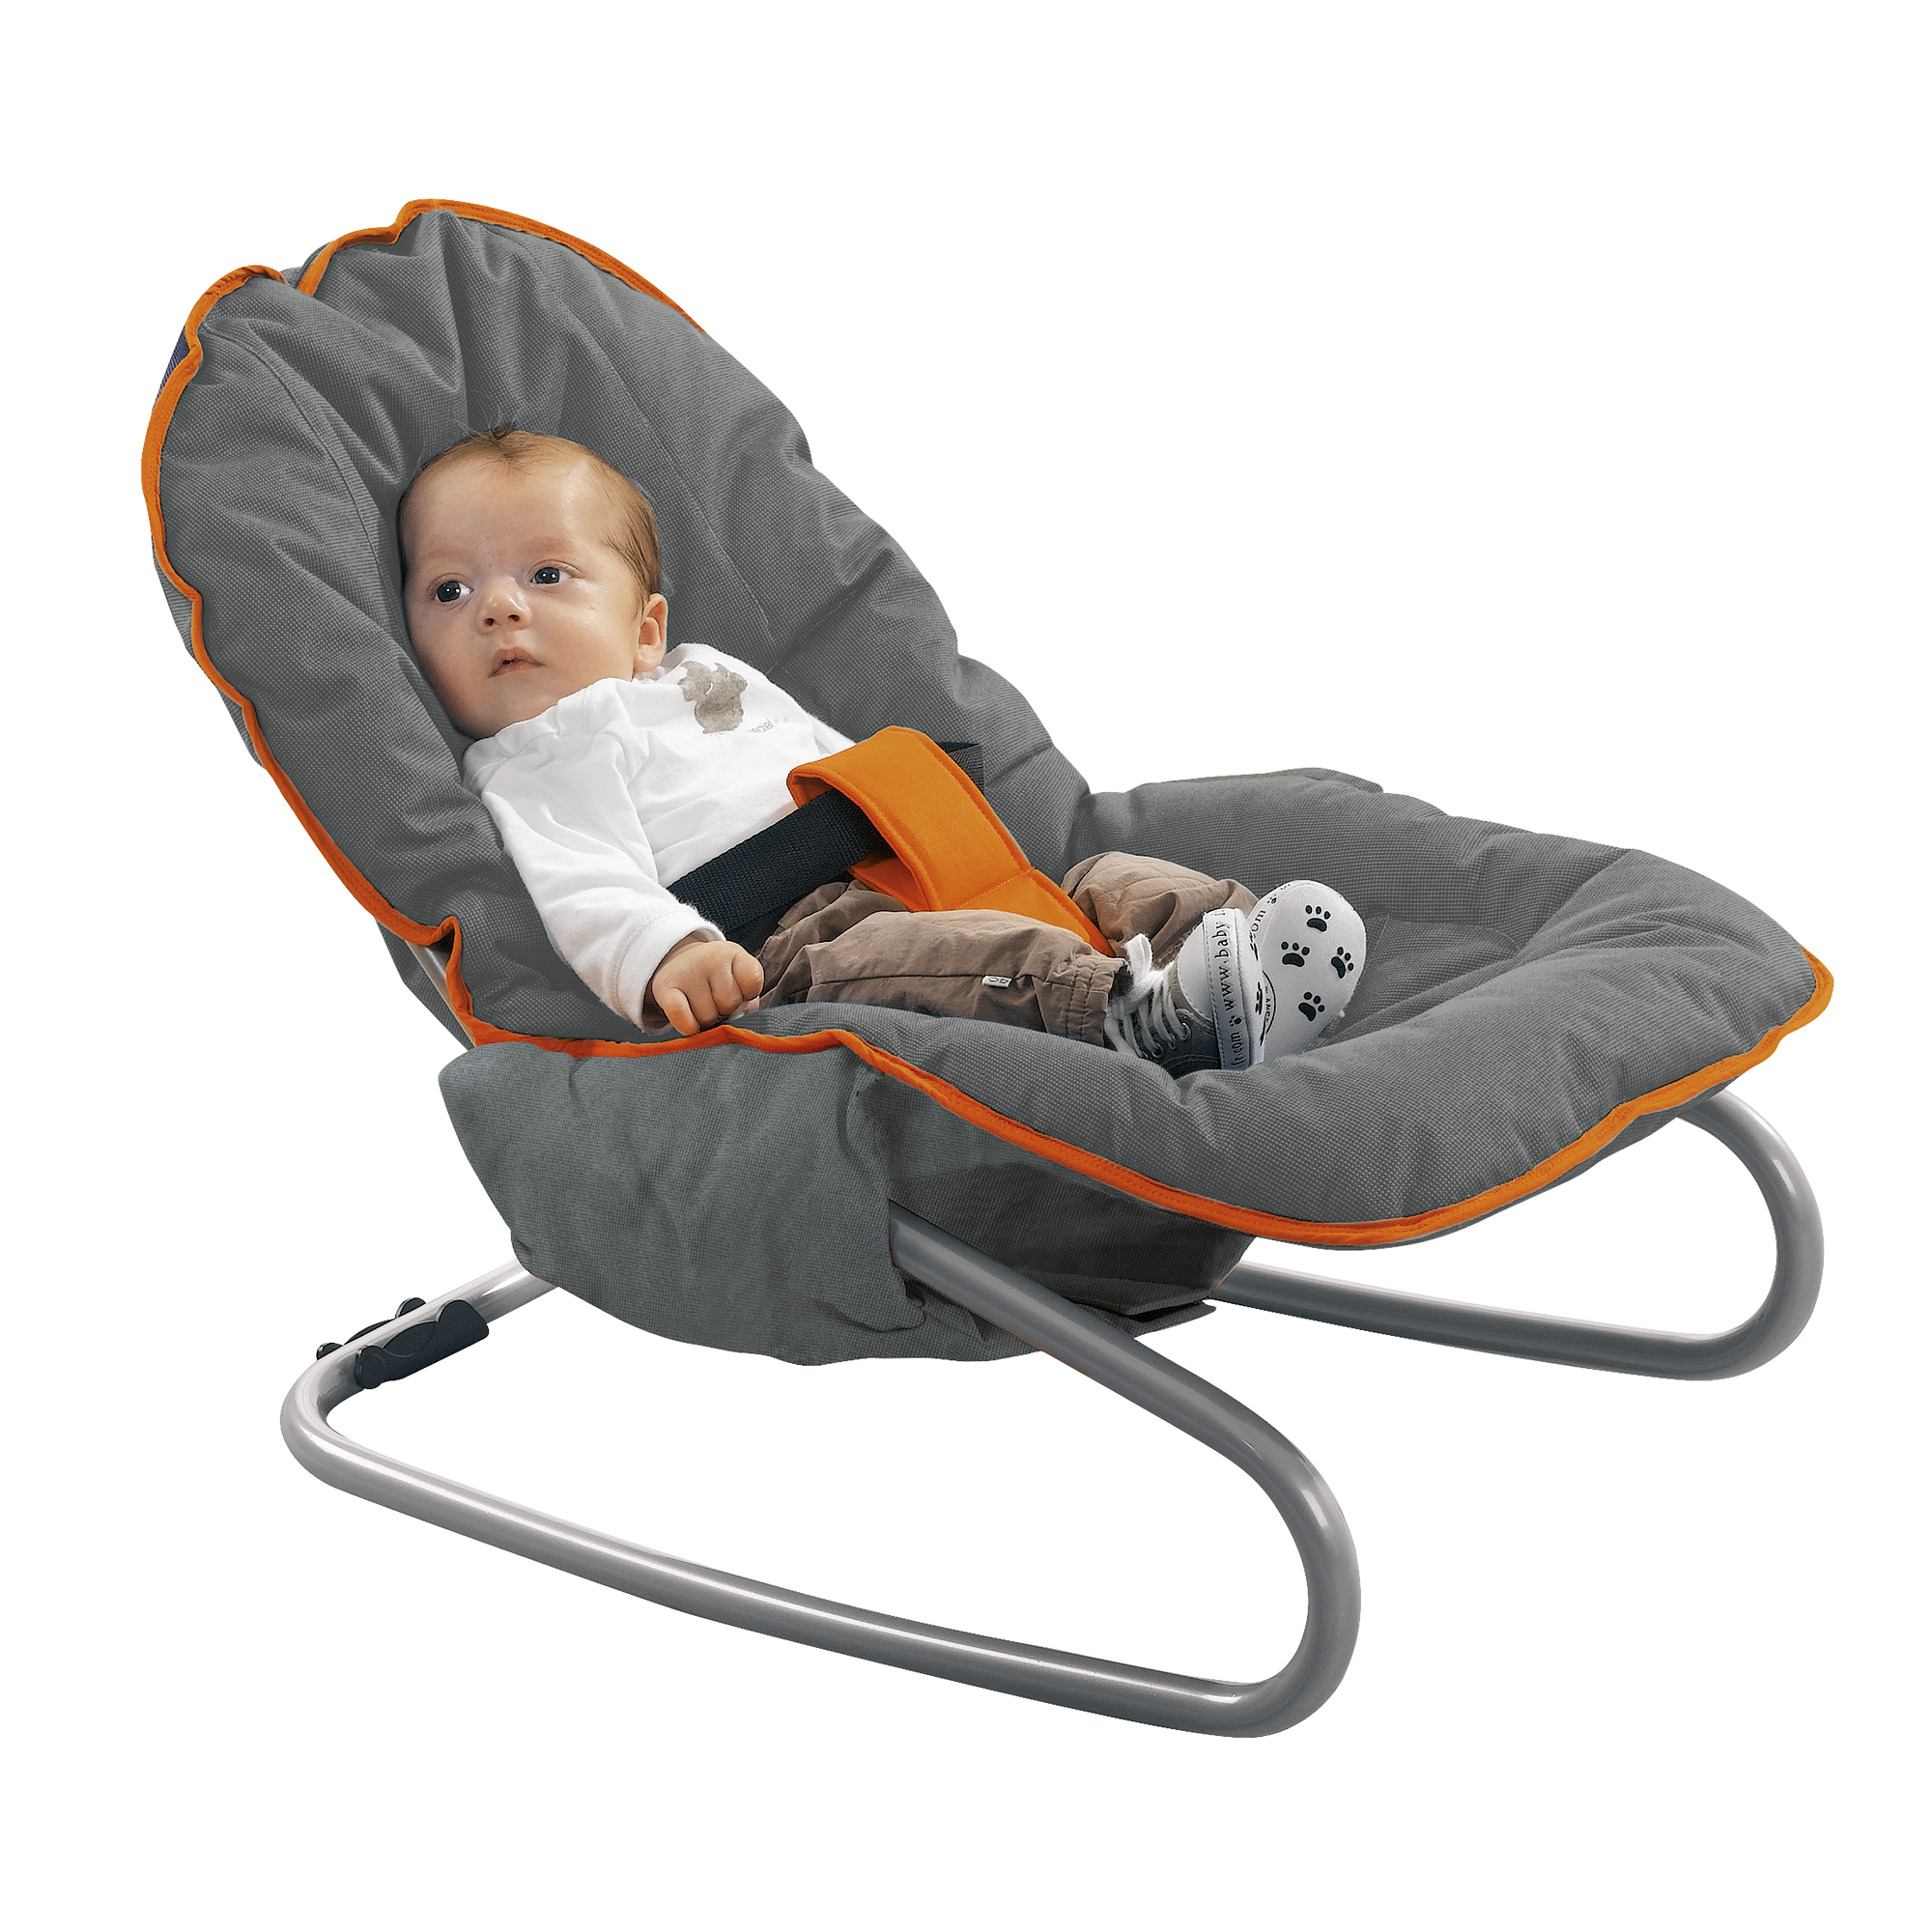 Swell Comfort Rocking Baby Bouncer Evergreenethics Interior Chair Design Evergreenethicsorg